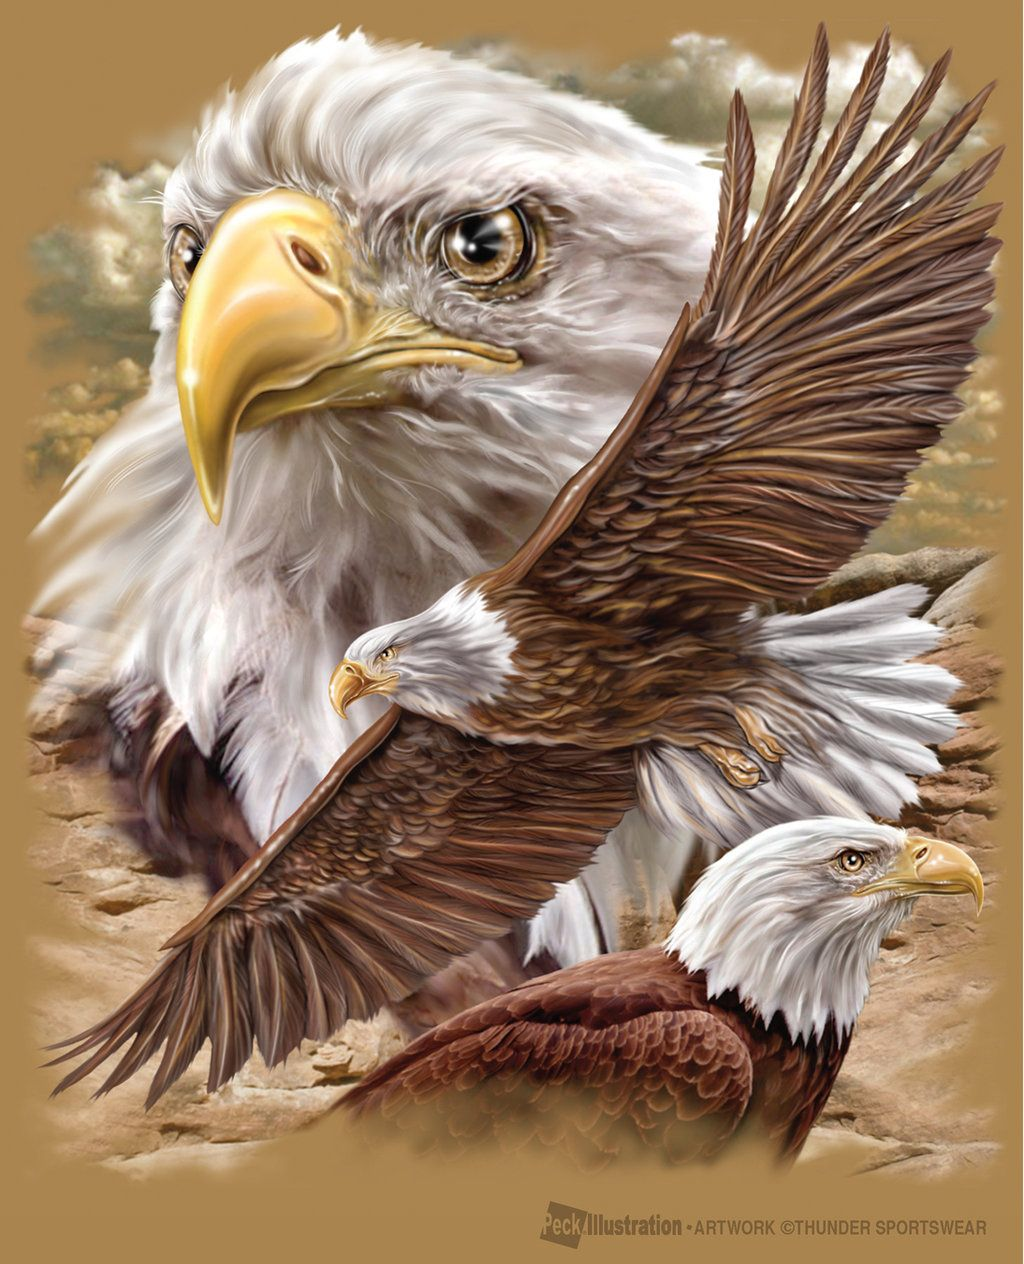 17 + Types of Eagles with Pictures, Names and Fact of ...